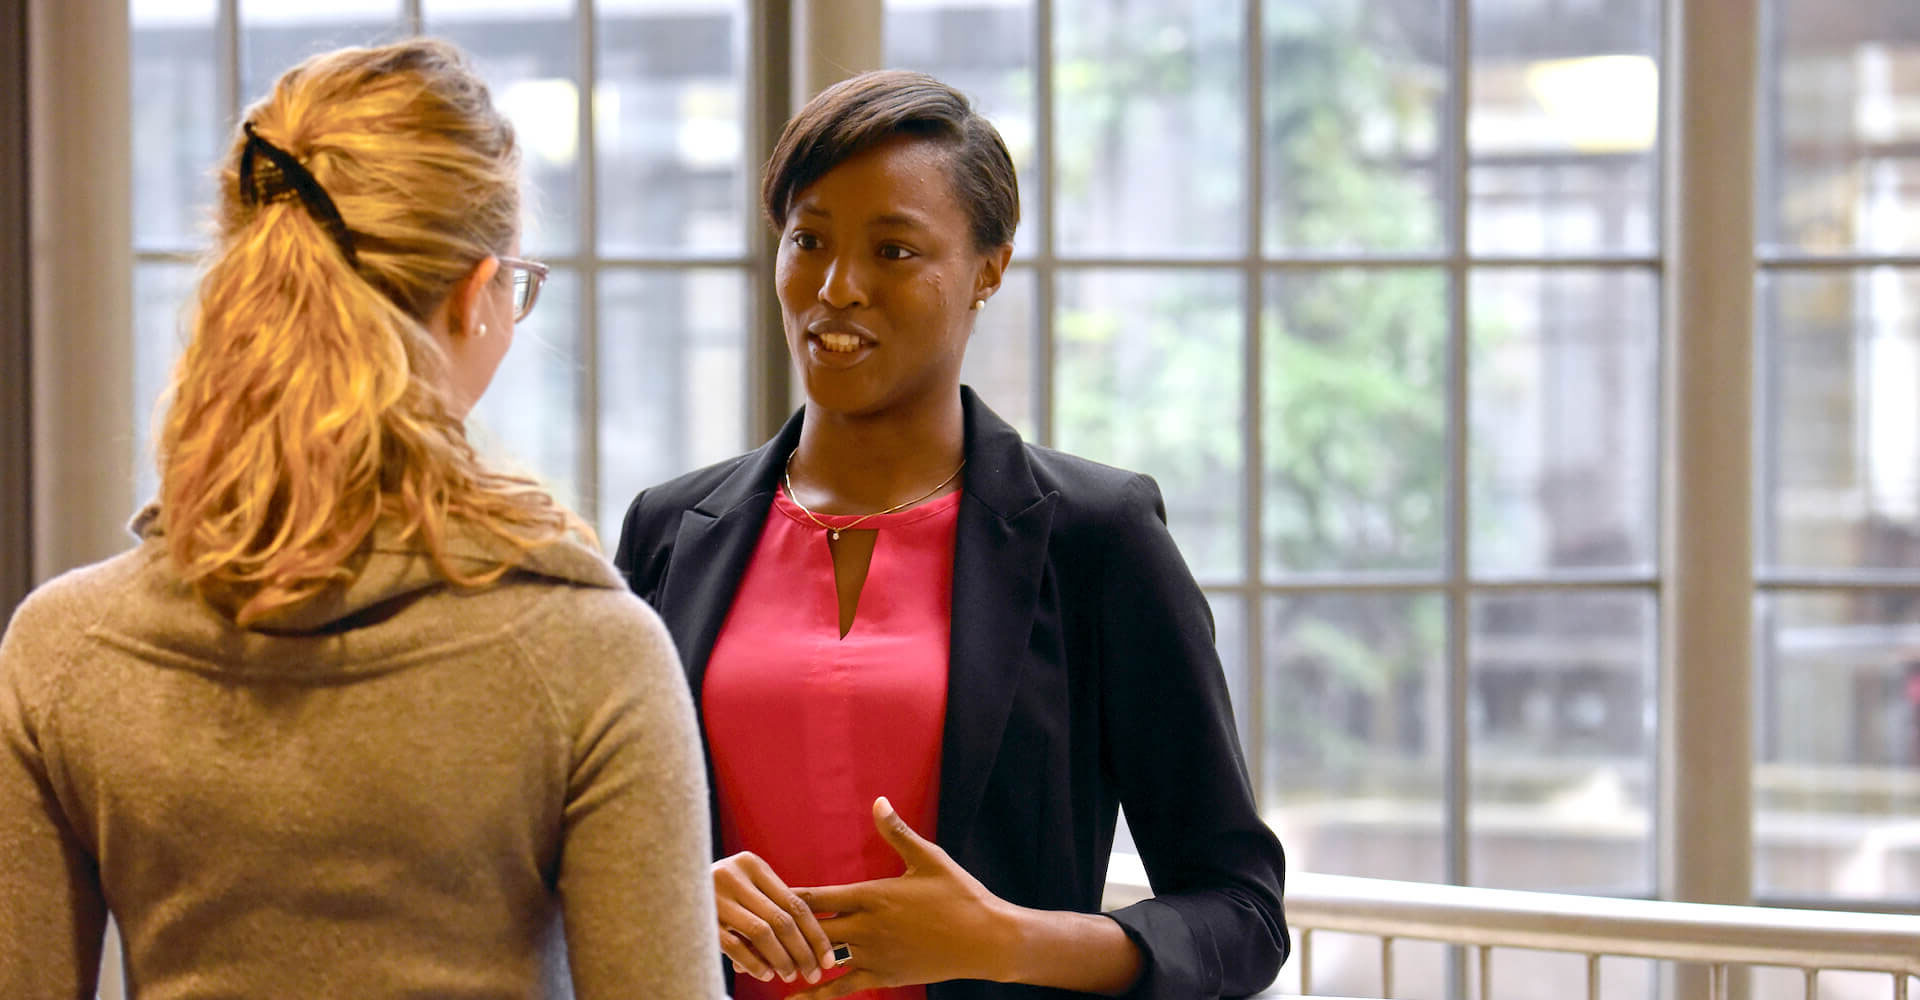 Two women in business attire having a conversation.